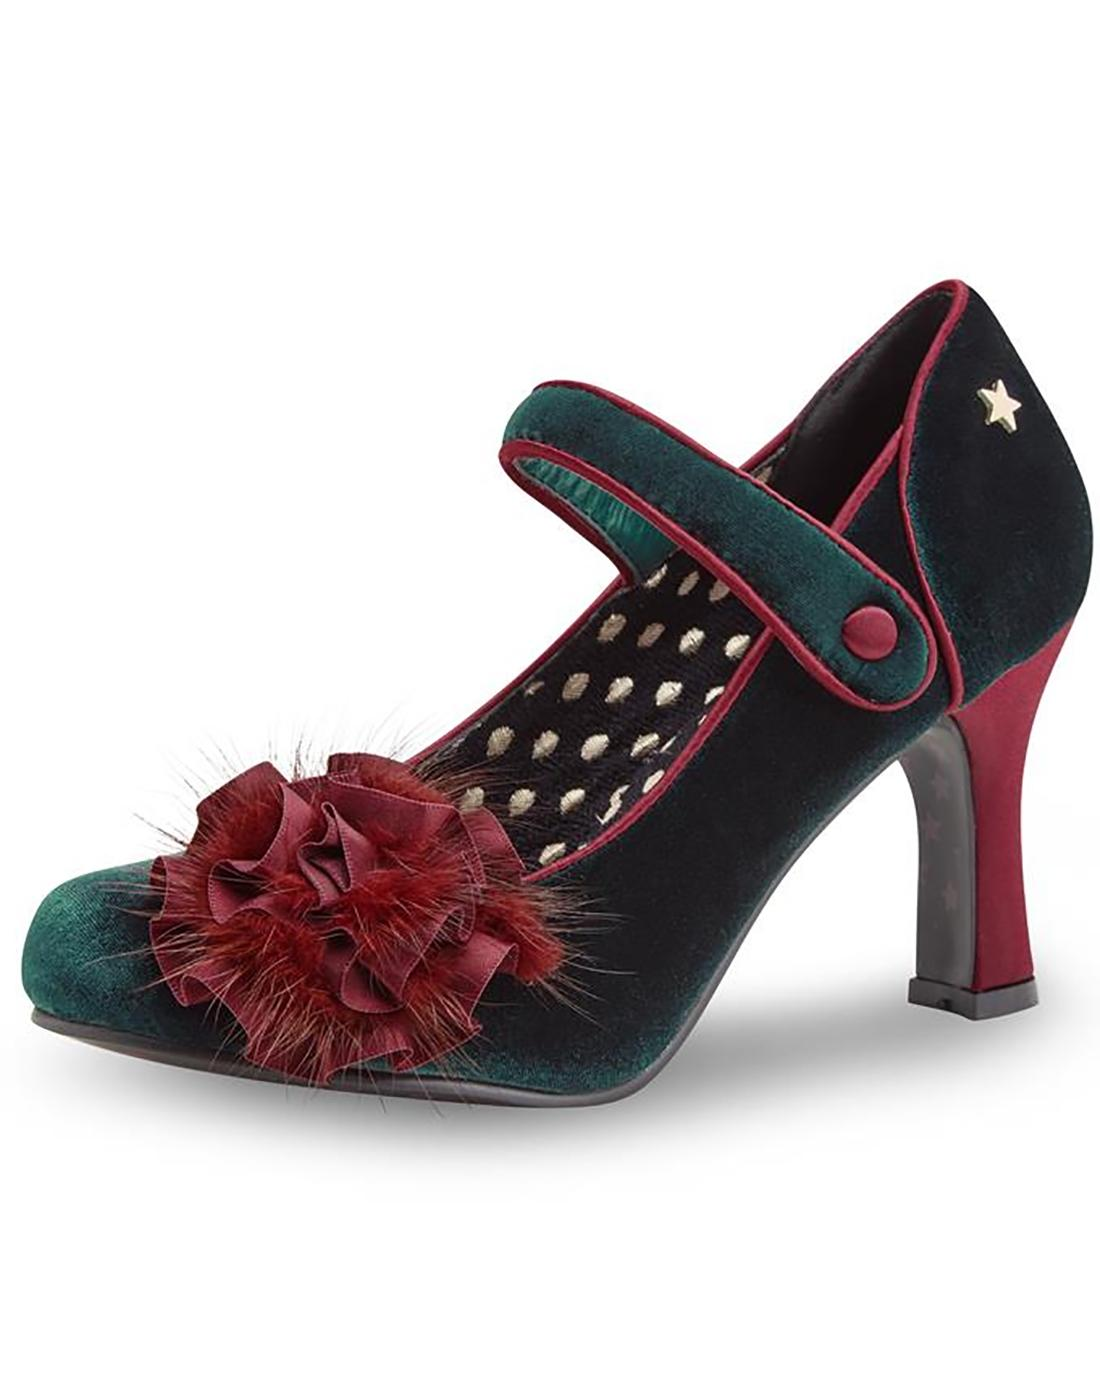 Parade JOE BROWNS Retro Velvet Heels in Green